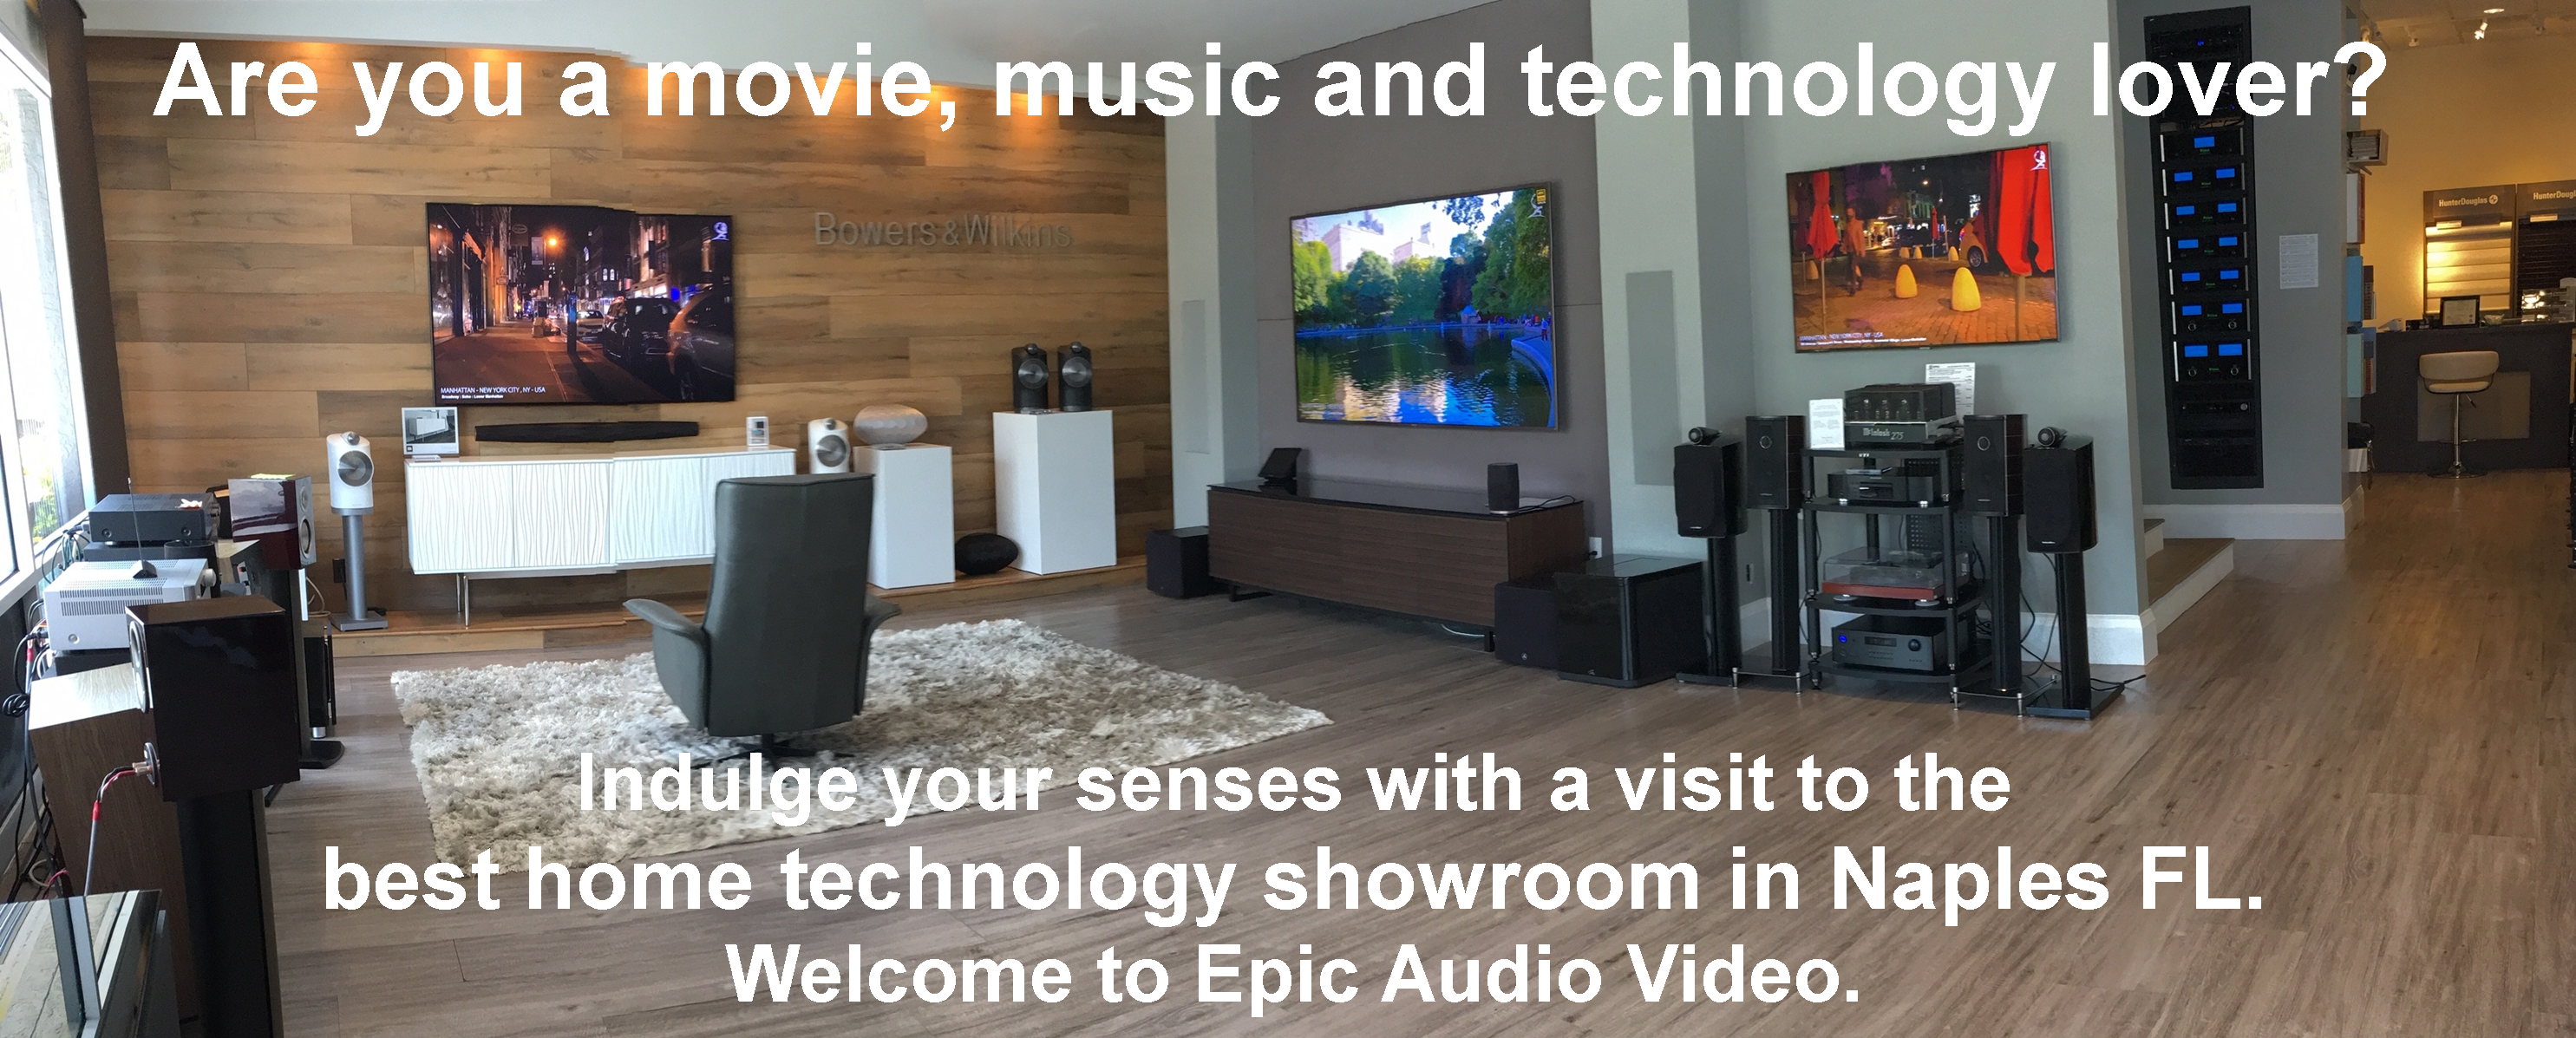 Epic Audio Video front Showroom demo area